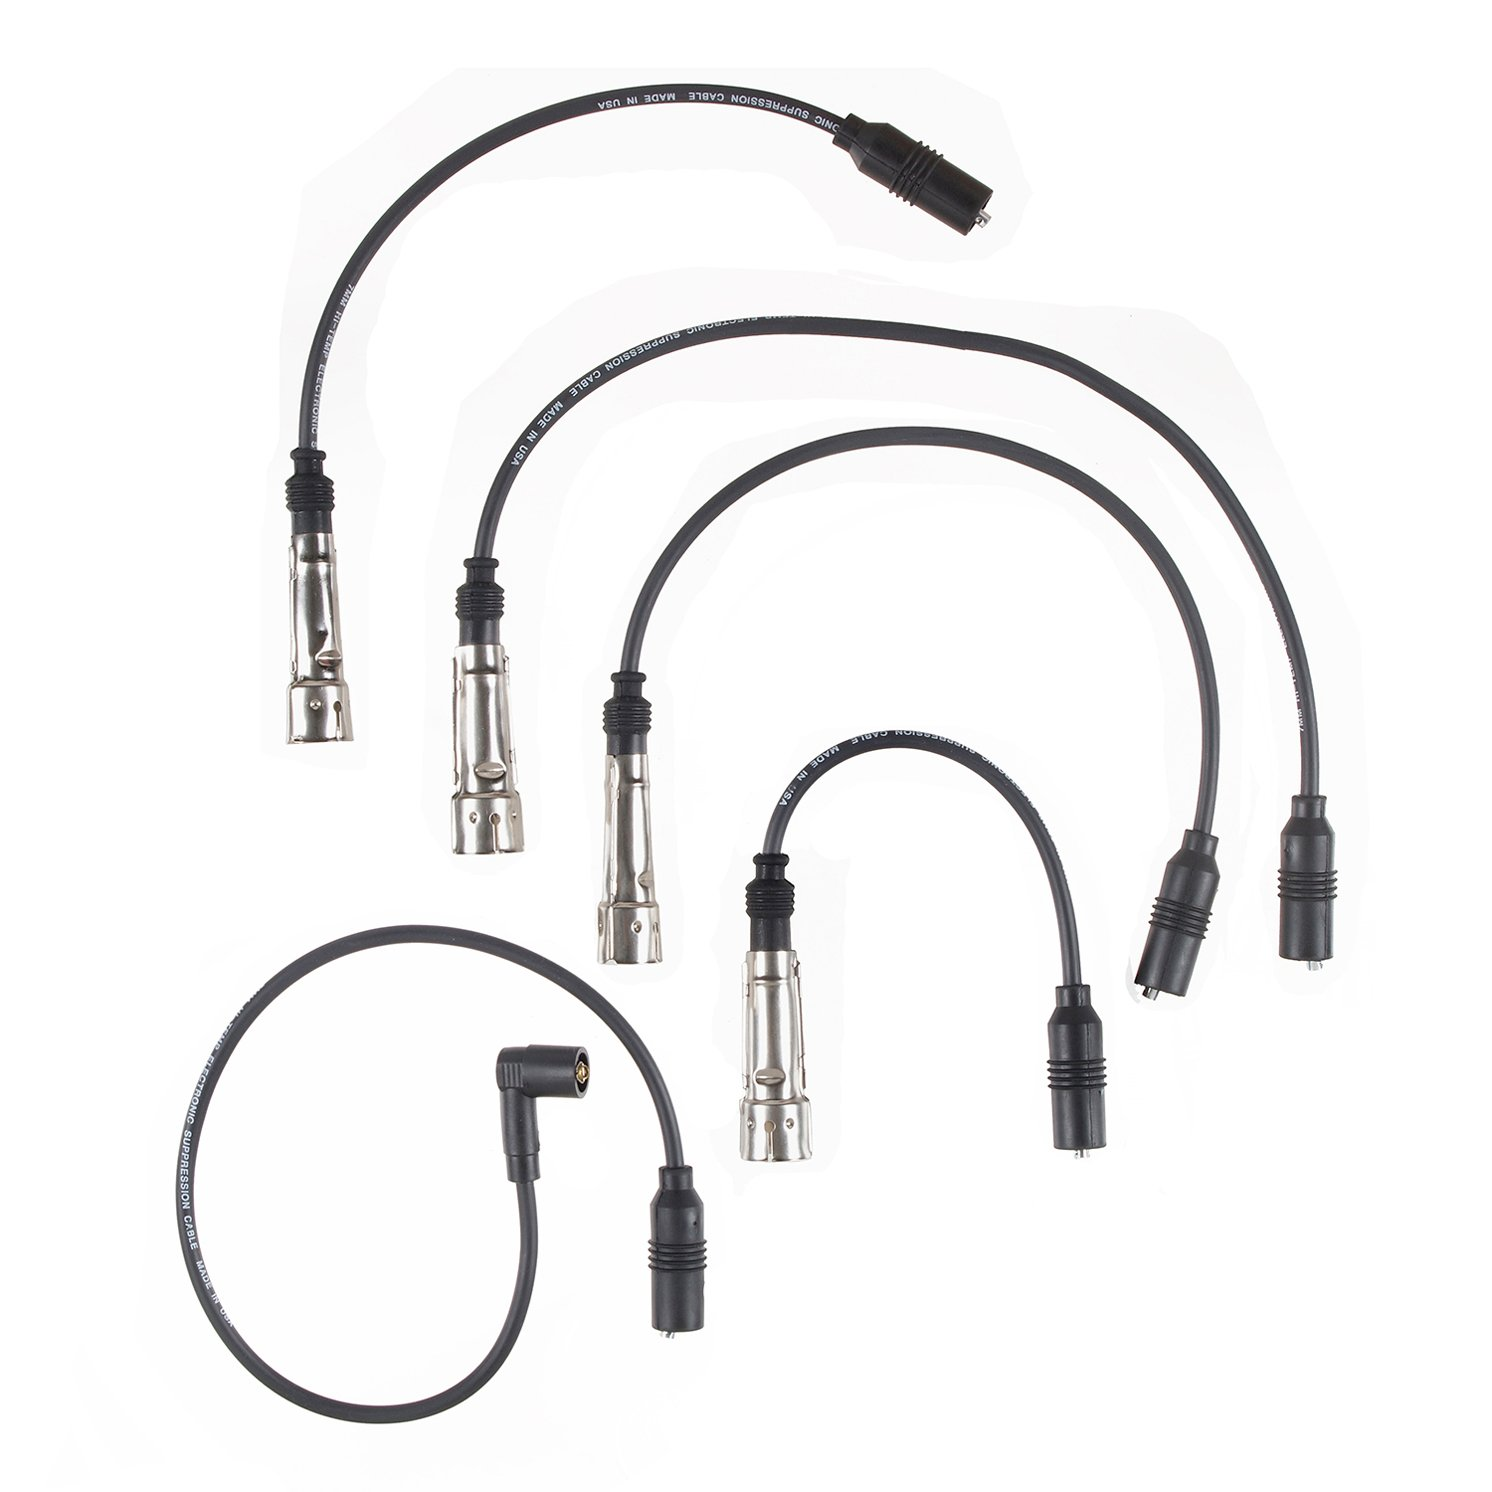 Proconnect Endurance Plus Wire Set